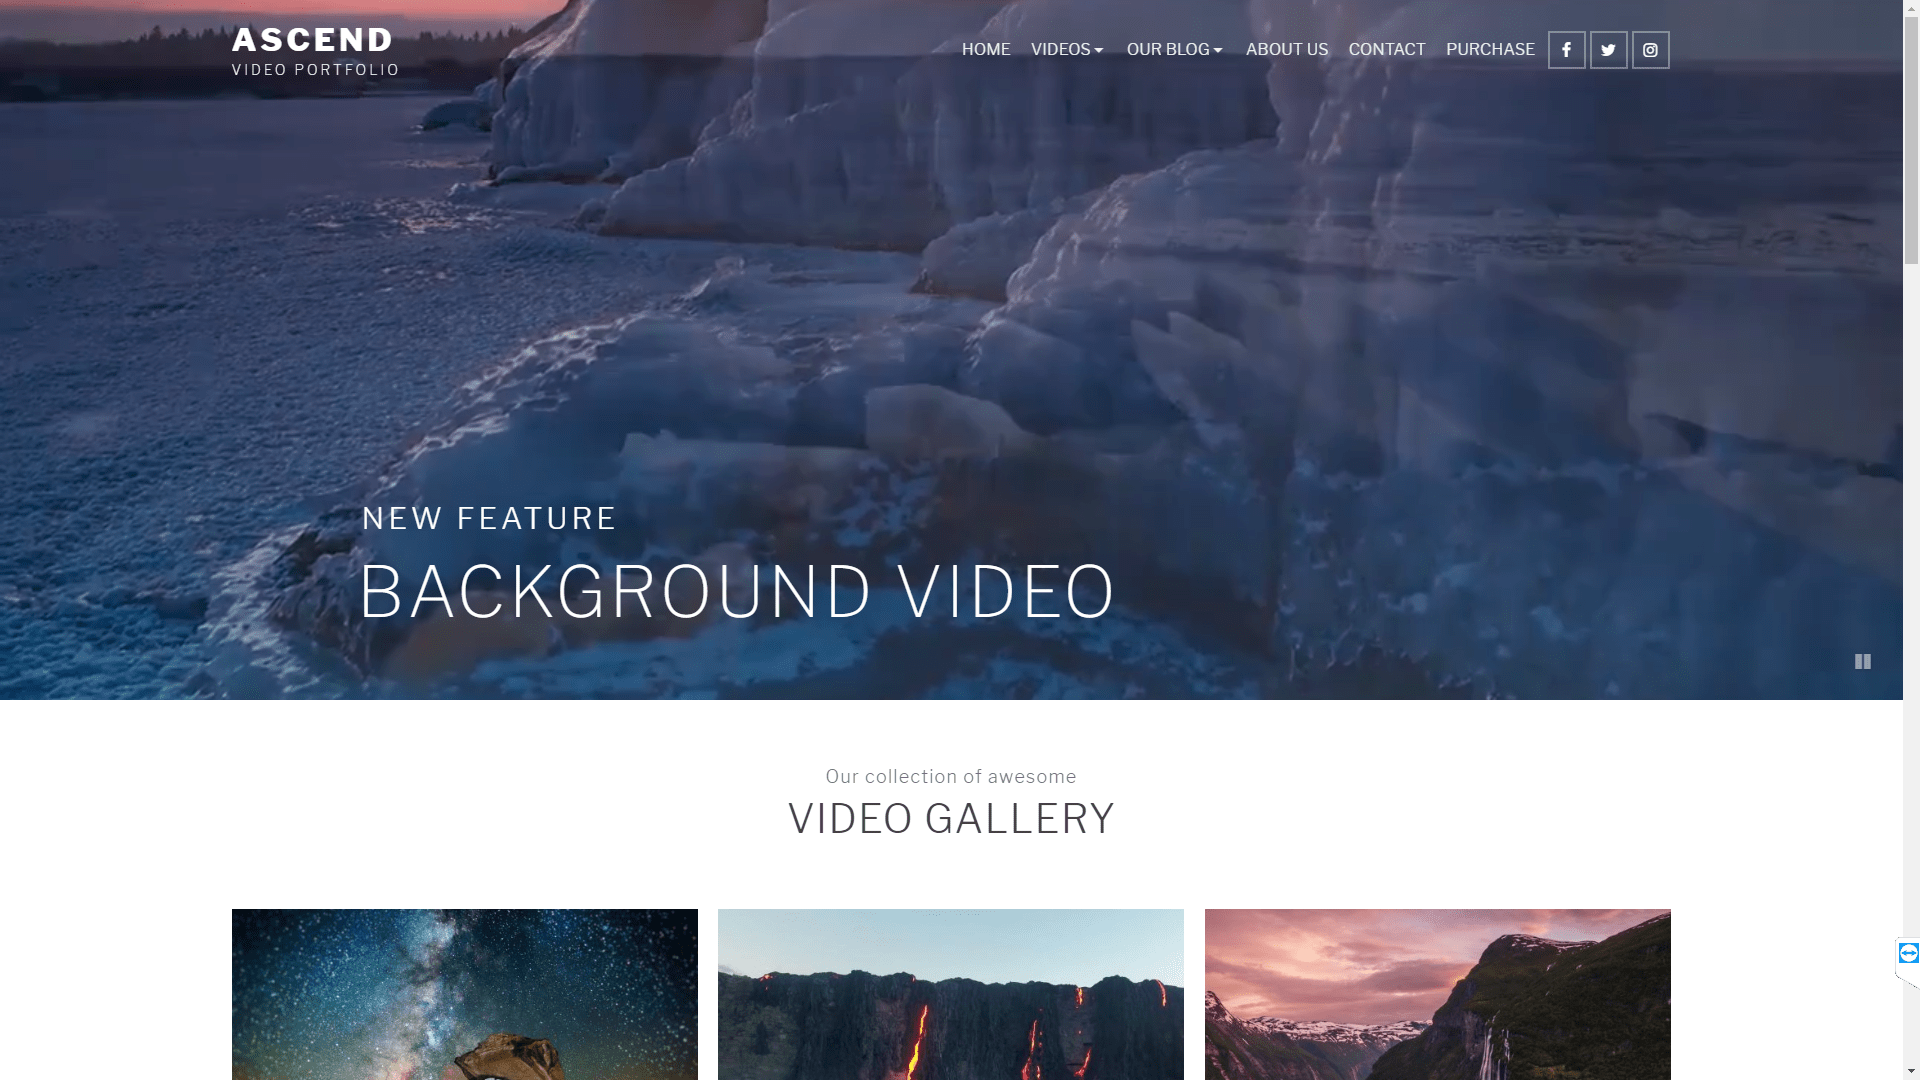 Web Design - Ascend Video Portfolio - Flagstaff AZ